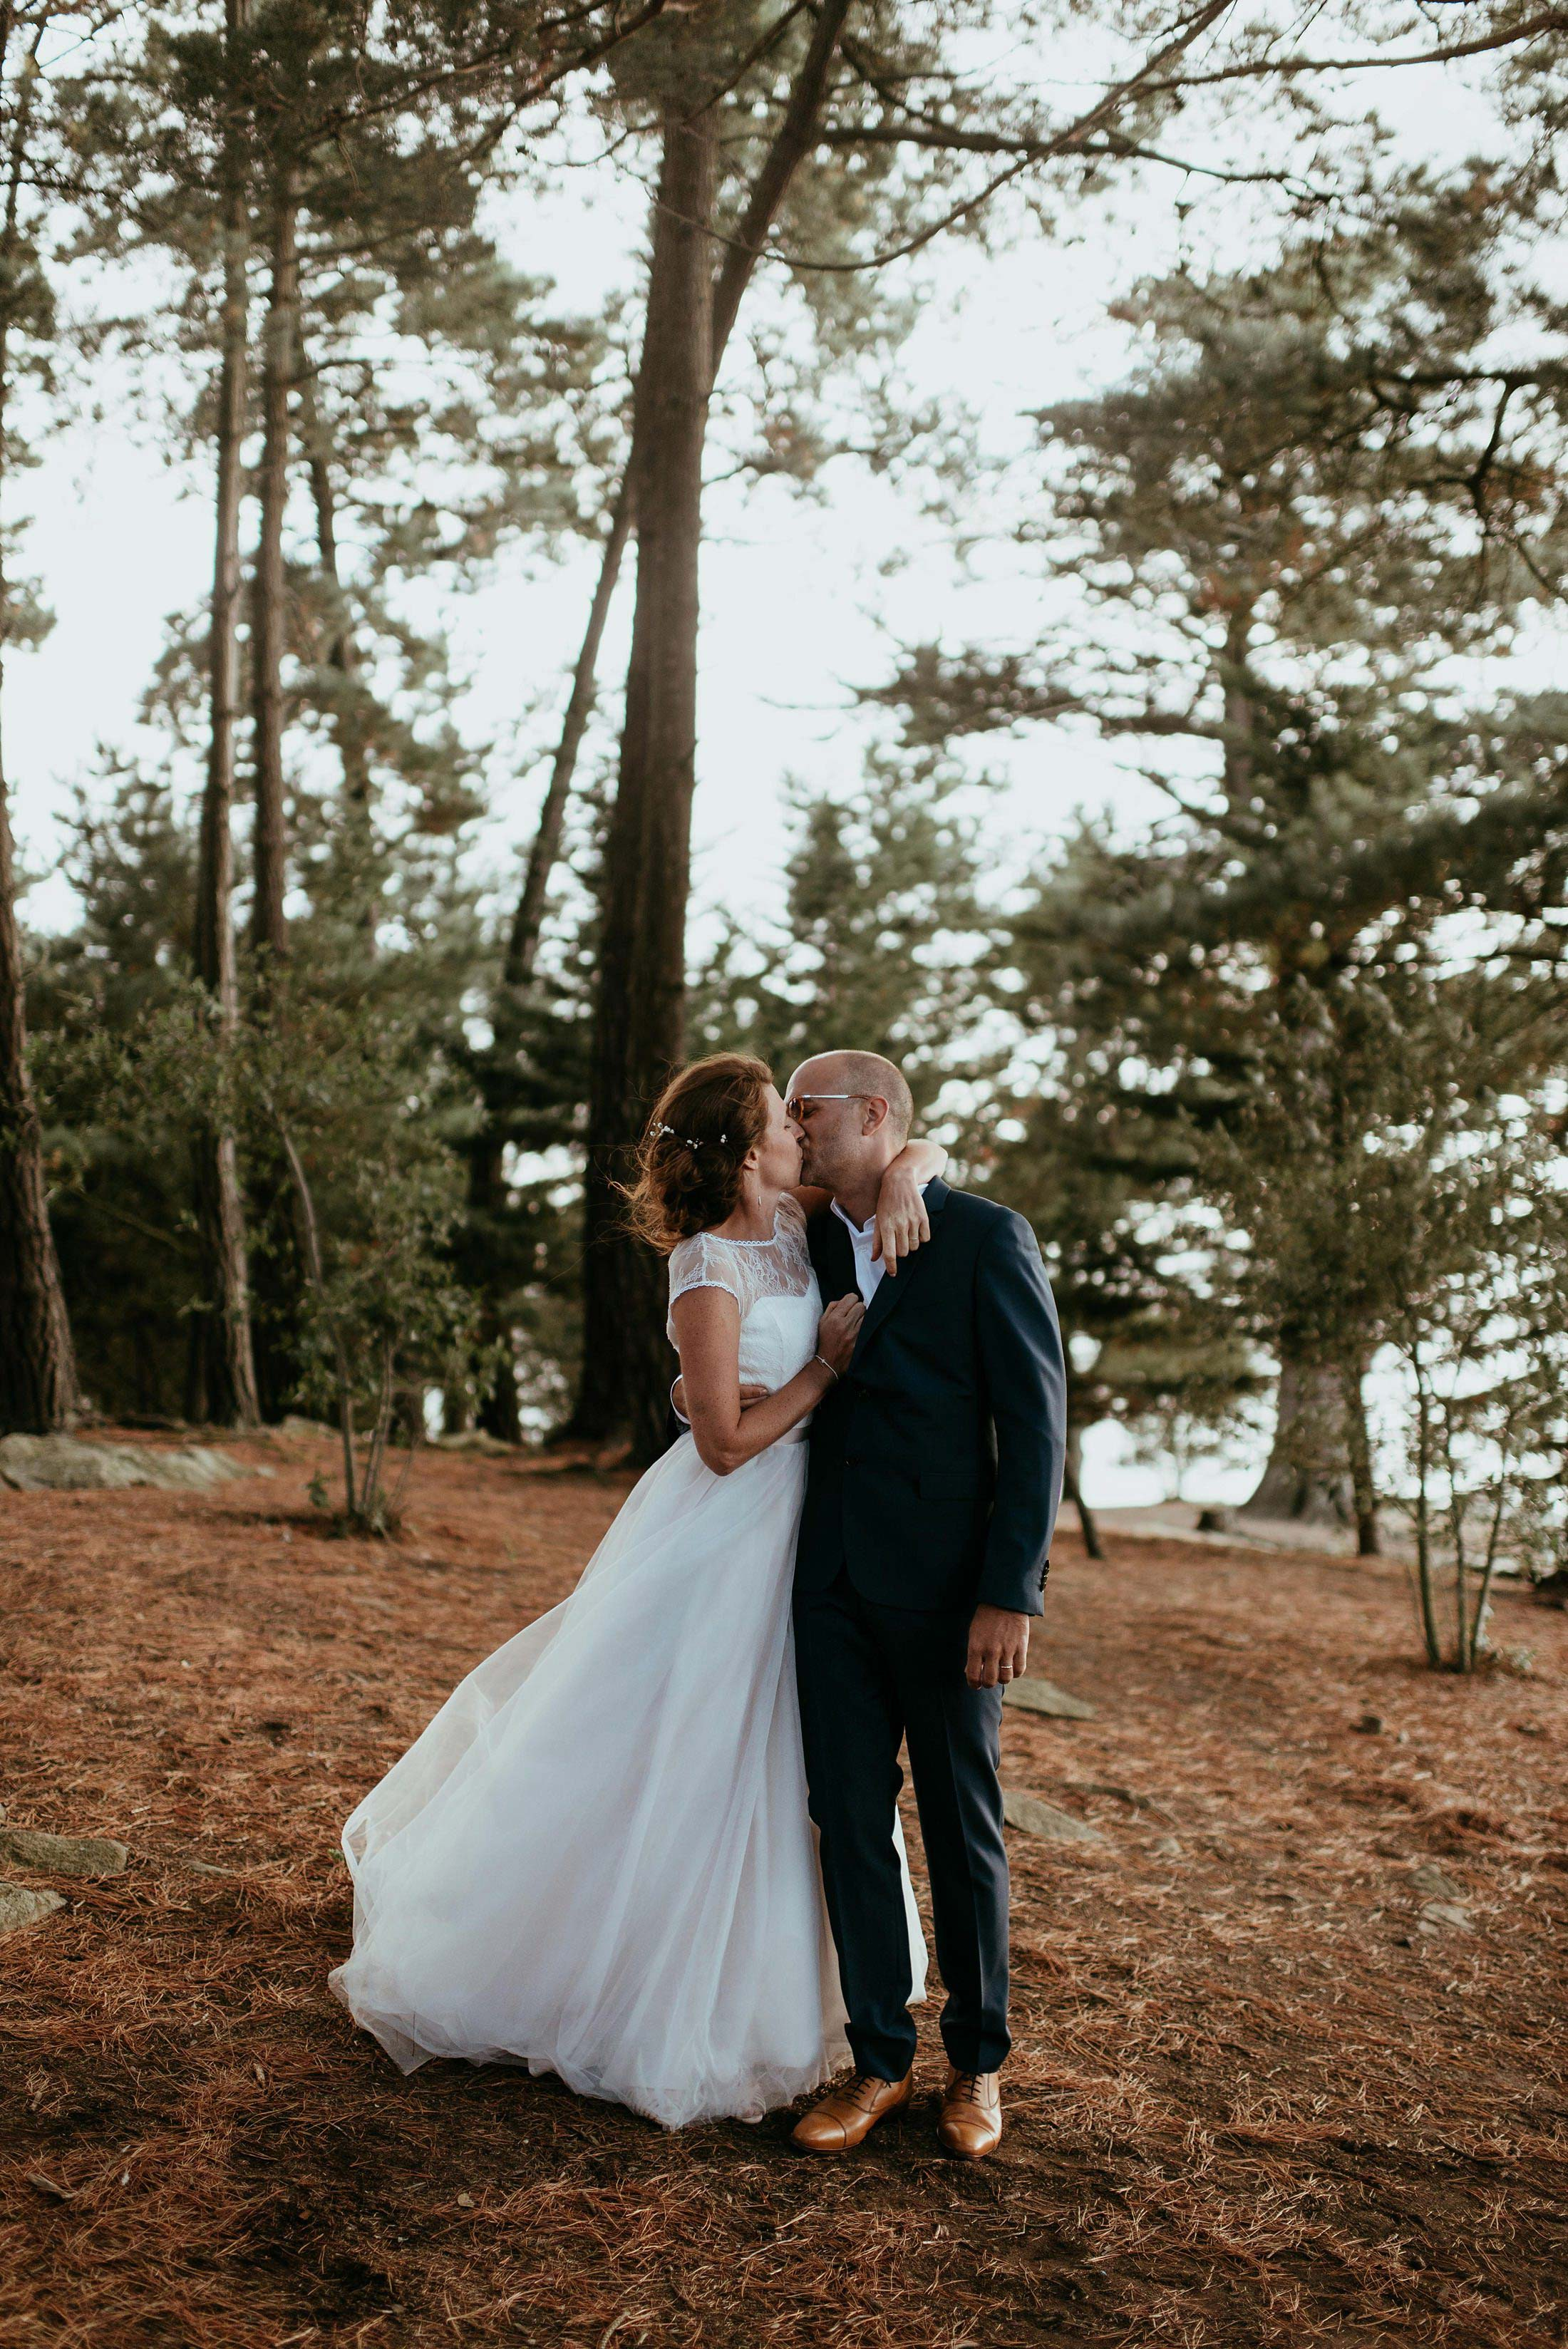 Mariage-storytelling-IleauxMoines-charlesseguy25